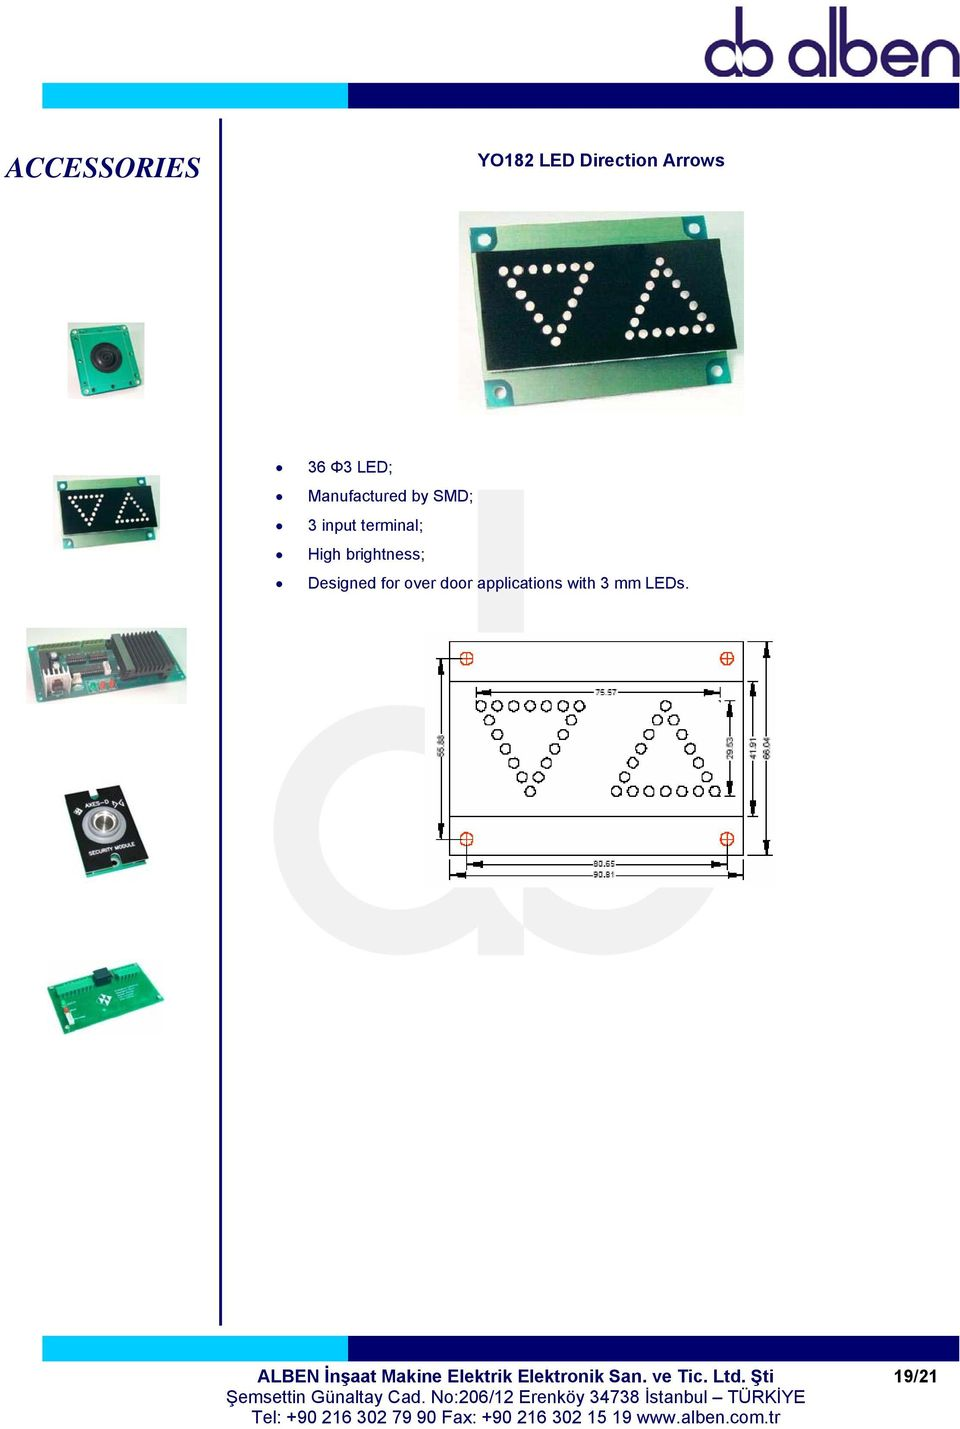 Designed for over door applications with 3 mm LEDs.